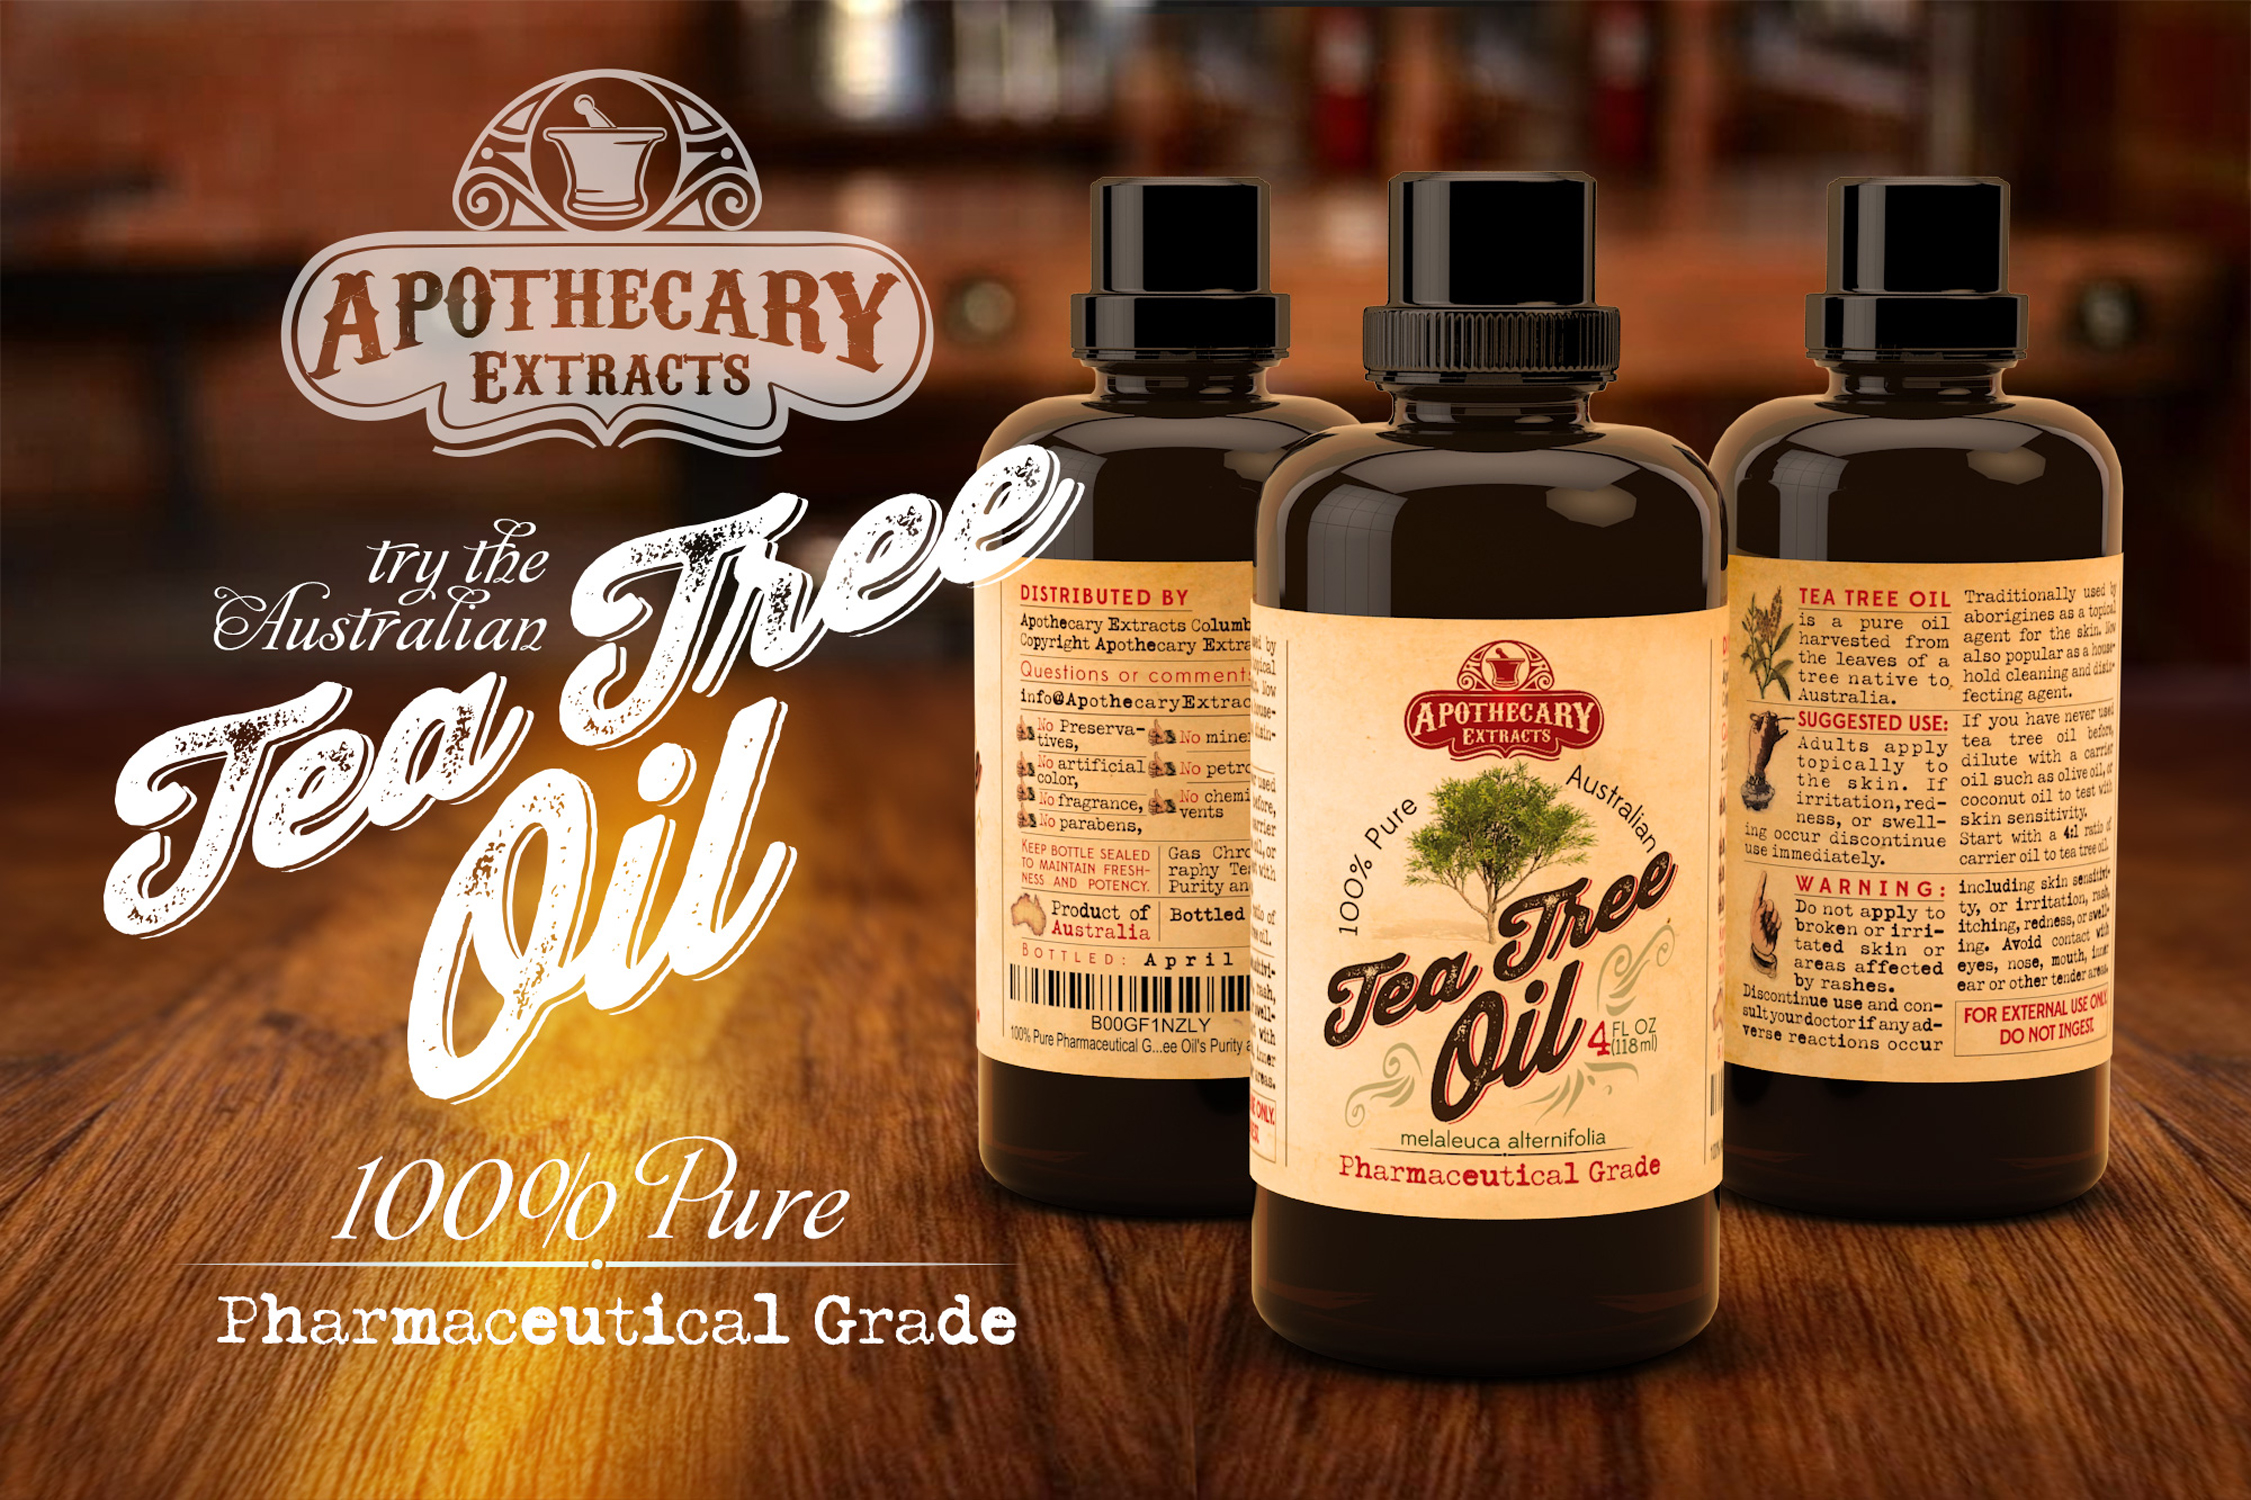 Australian Tea Tree Oil